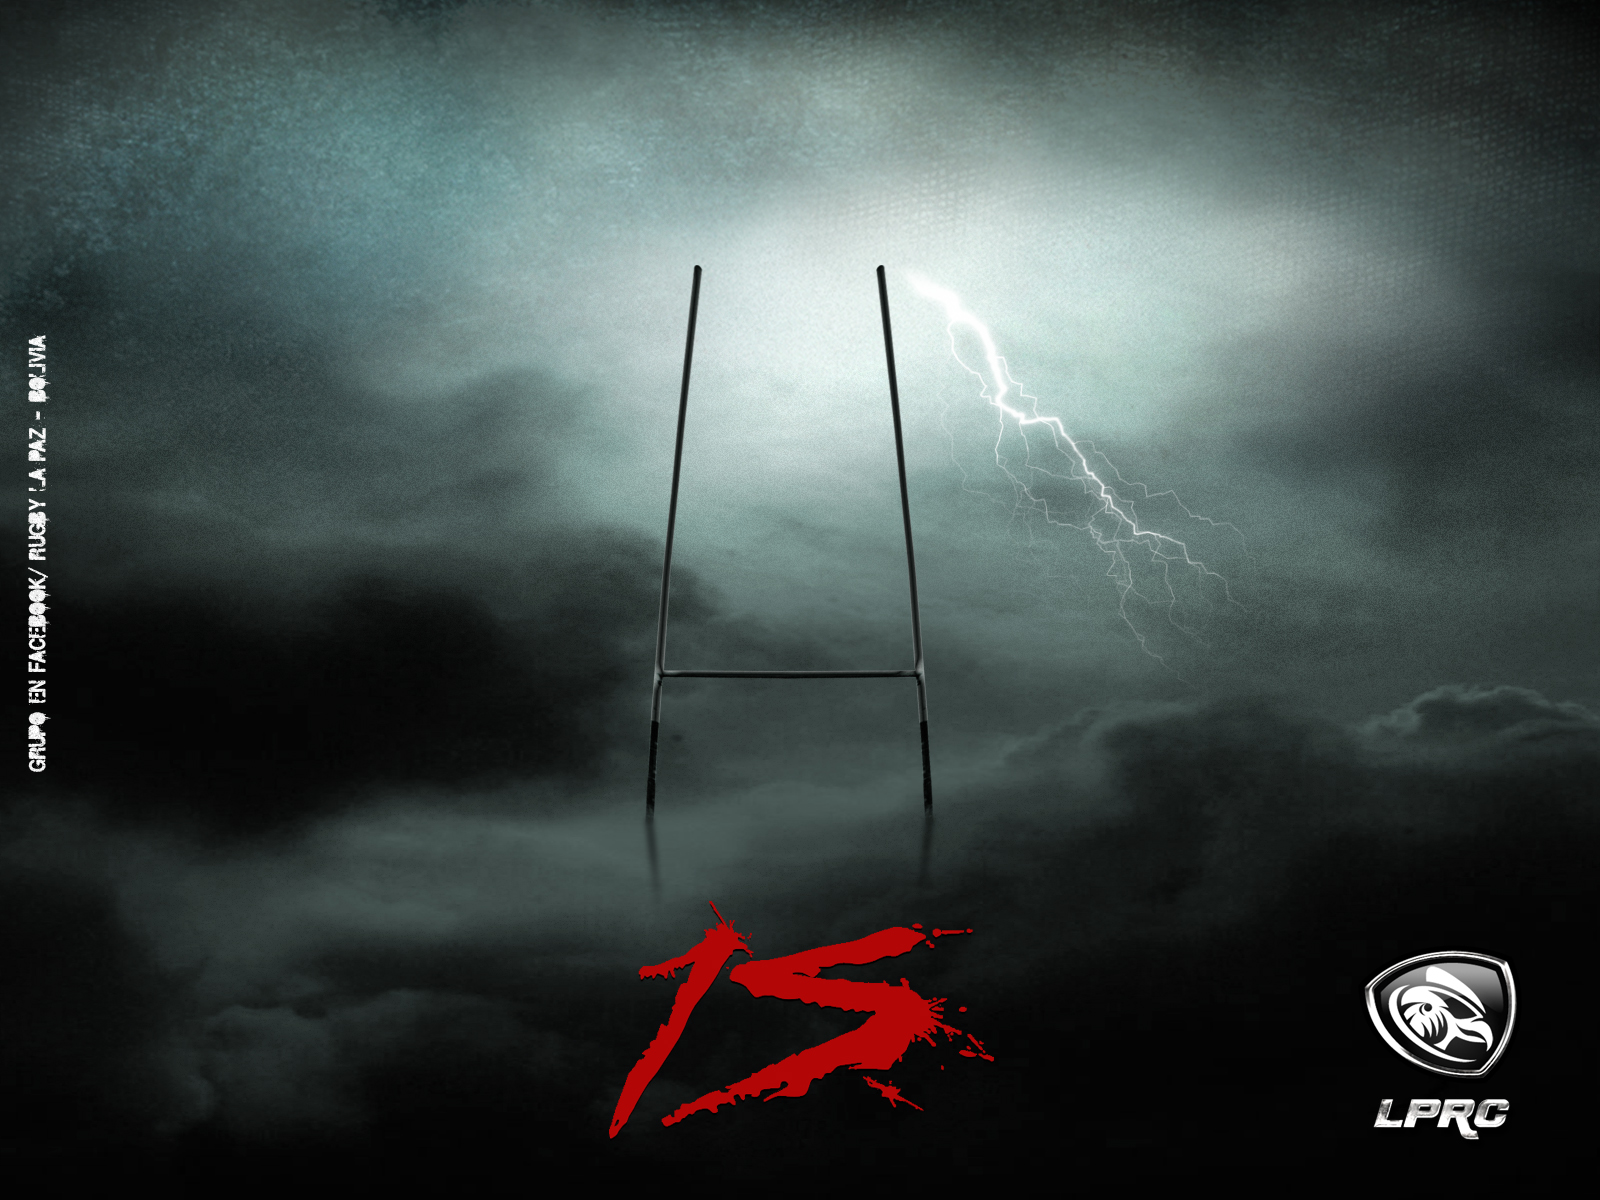 rugby wallpaper 2 rugby wallpaper 3 rugby wallpaper 4 rugby wallpaper 1600x1200